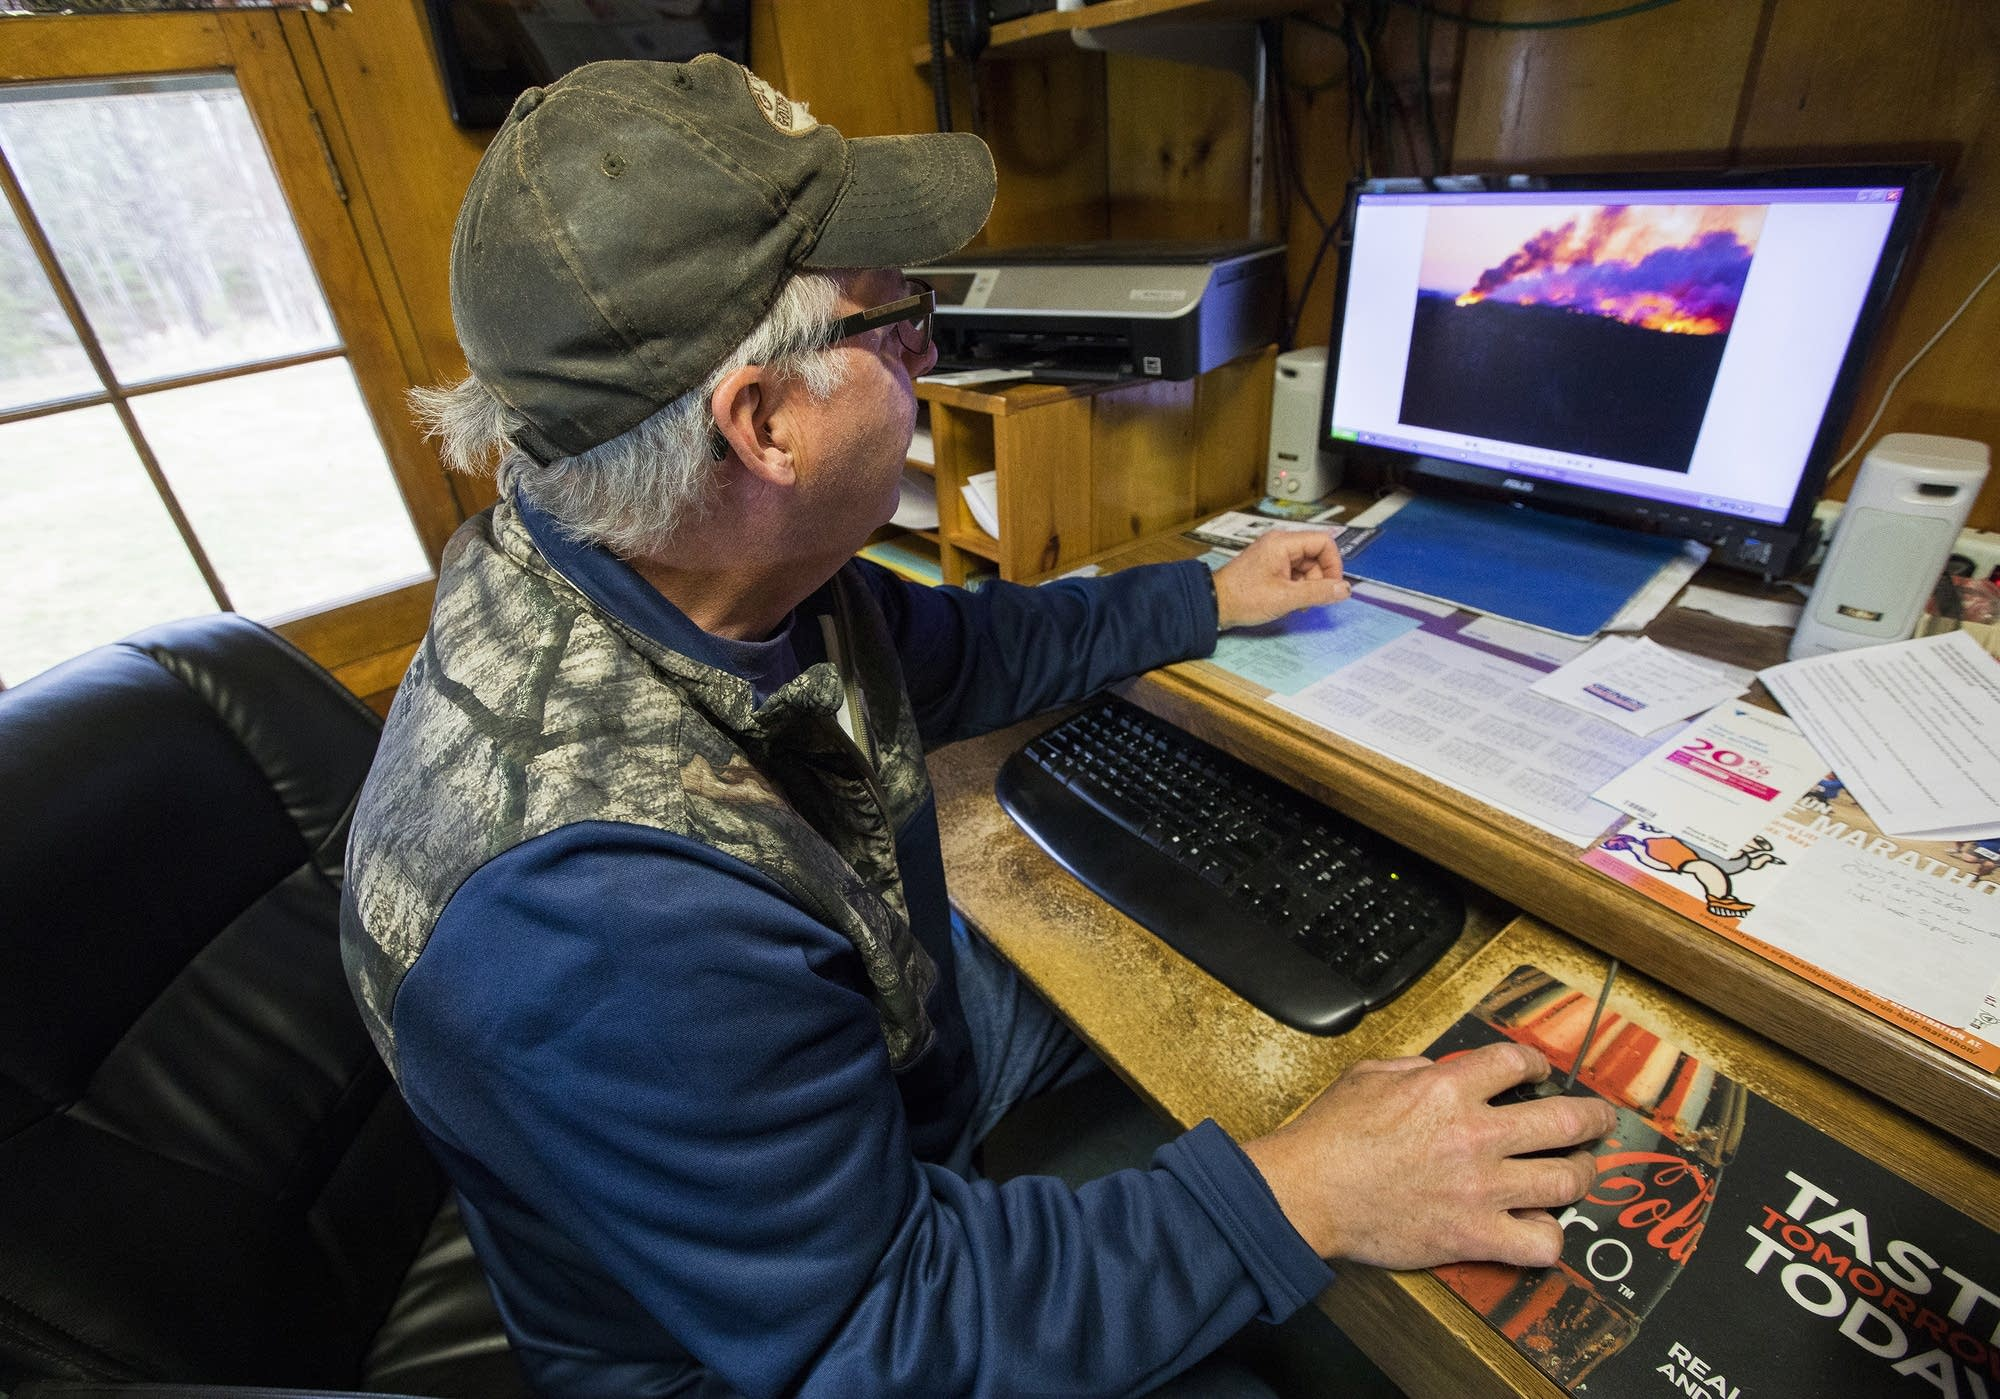 Dan Baumann looks through photos he took during the fire.